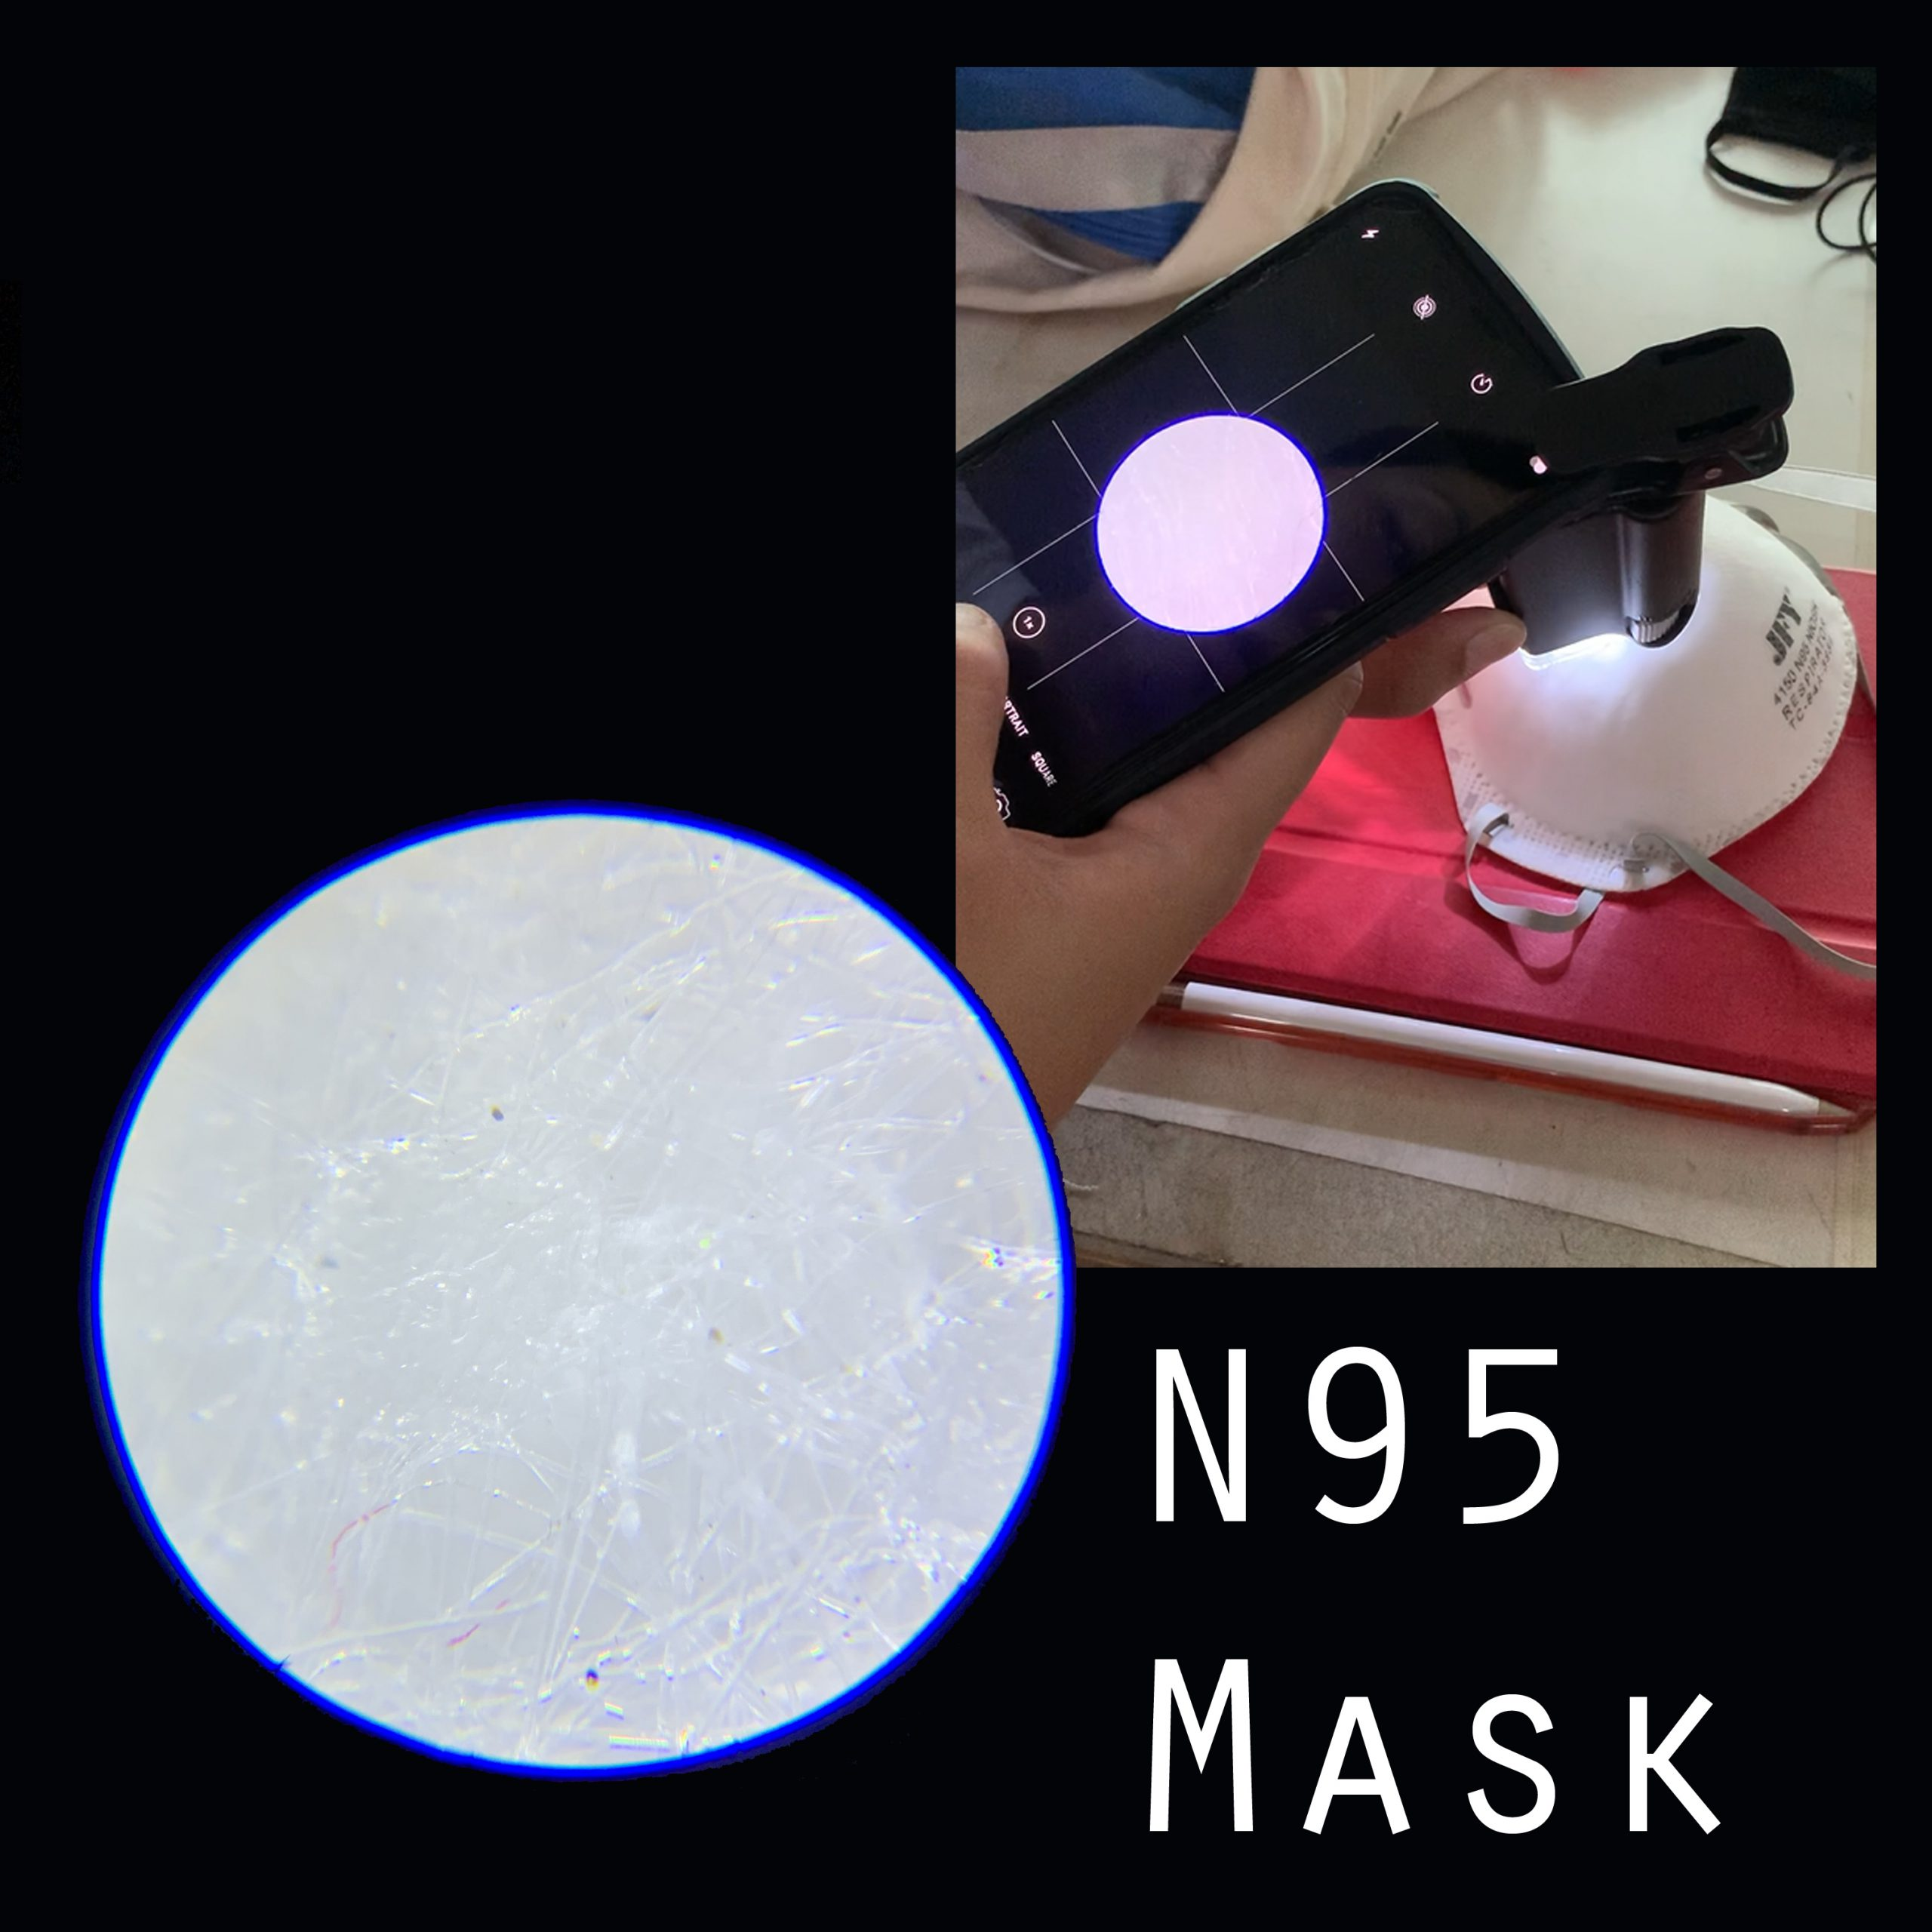 x50 magnify fabric surface N95 masks